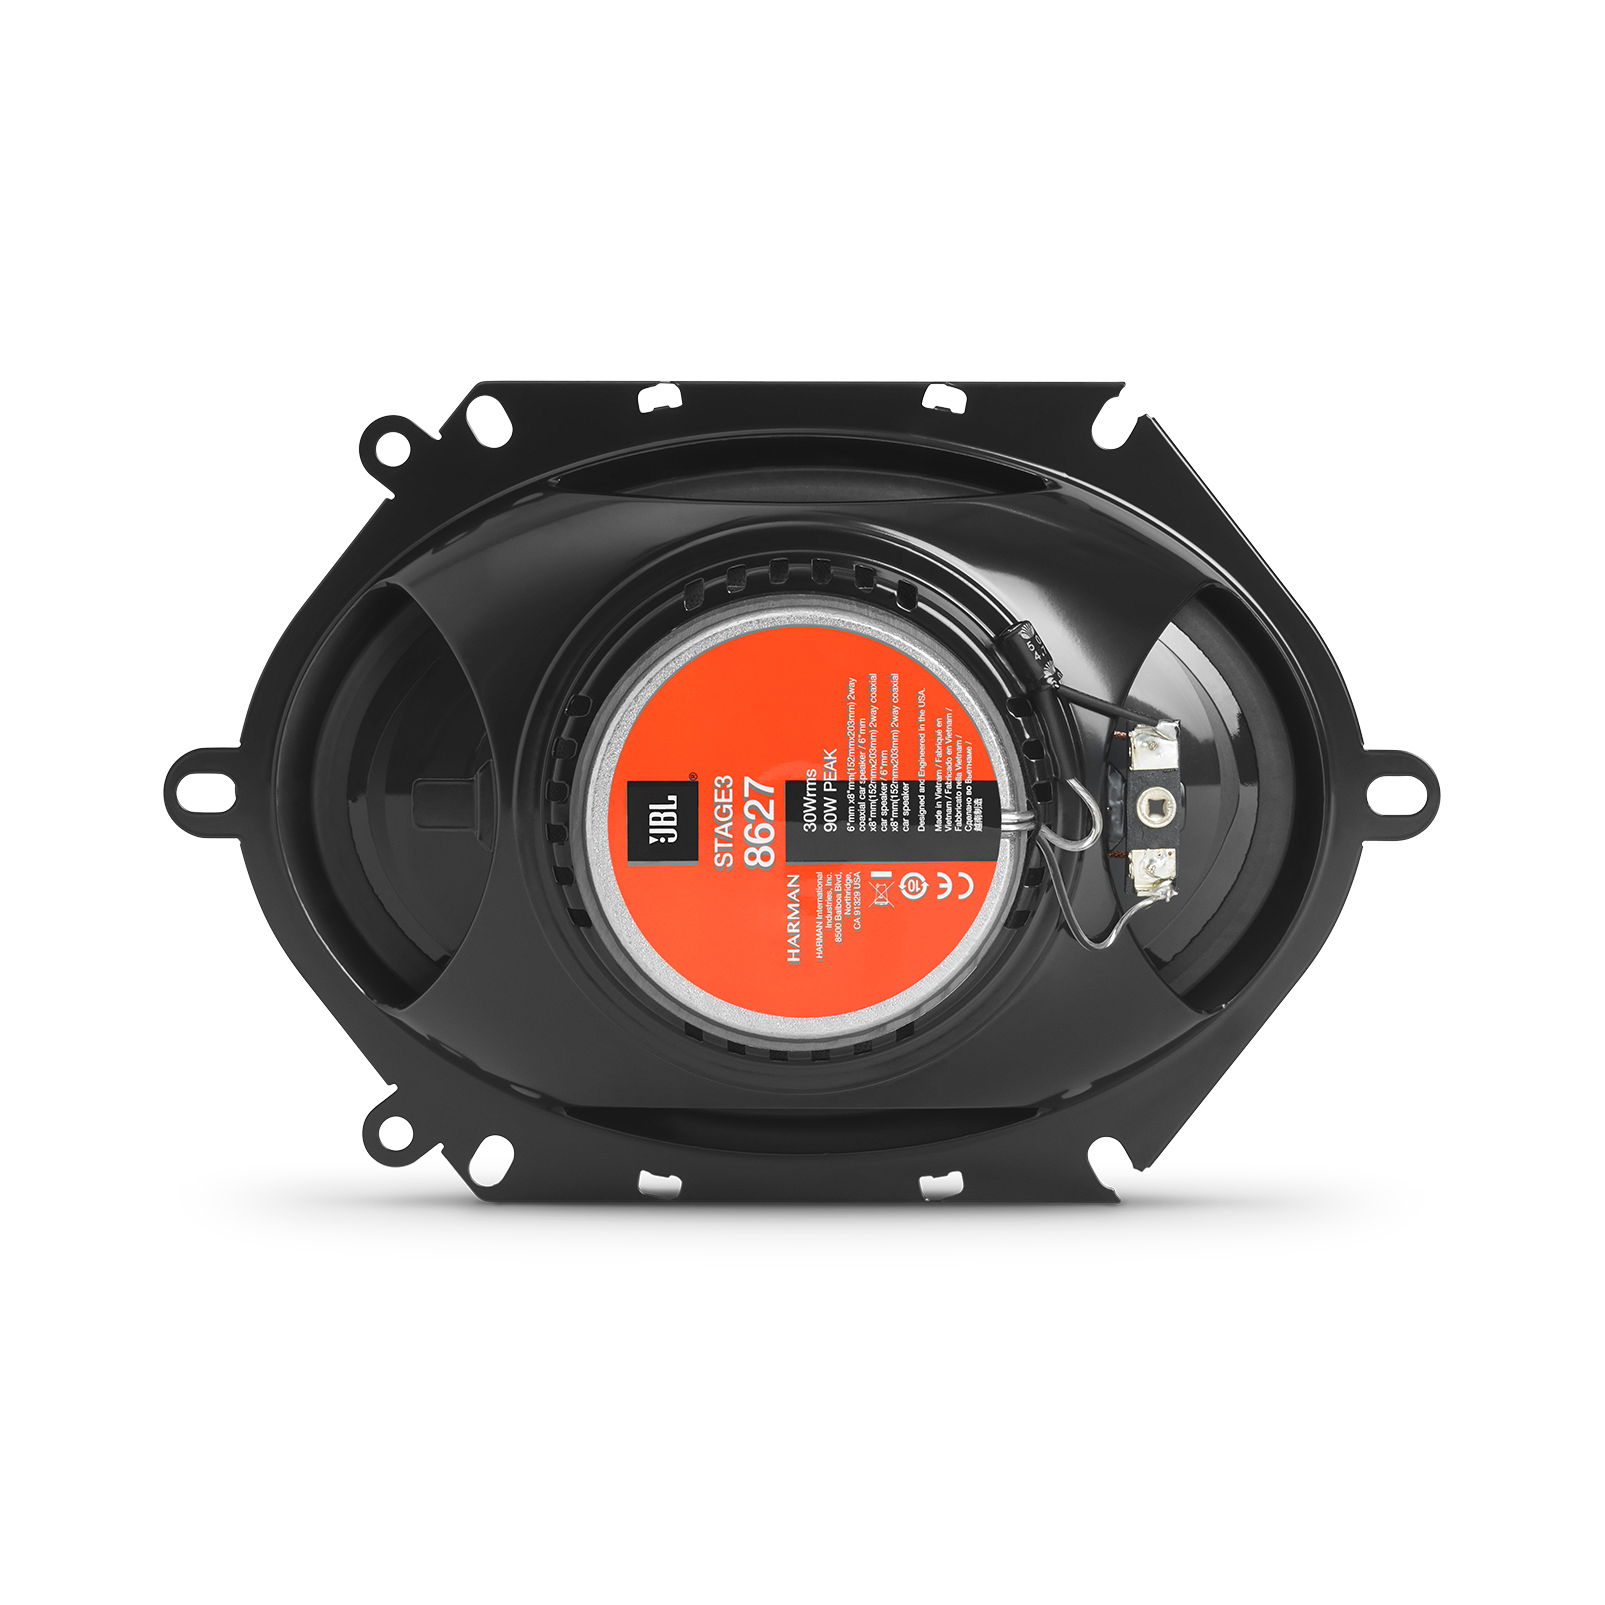 "Stage3 8627 - Black - 6"" x8""(152mmx203mm)  2-Way coaxial  car speaker - Back"